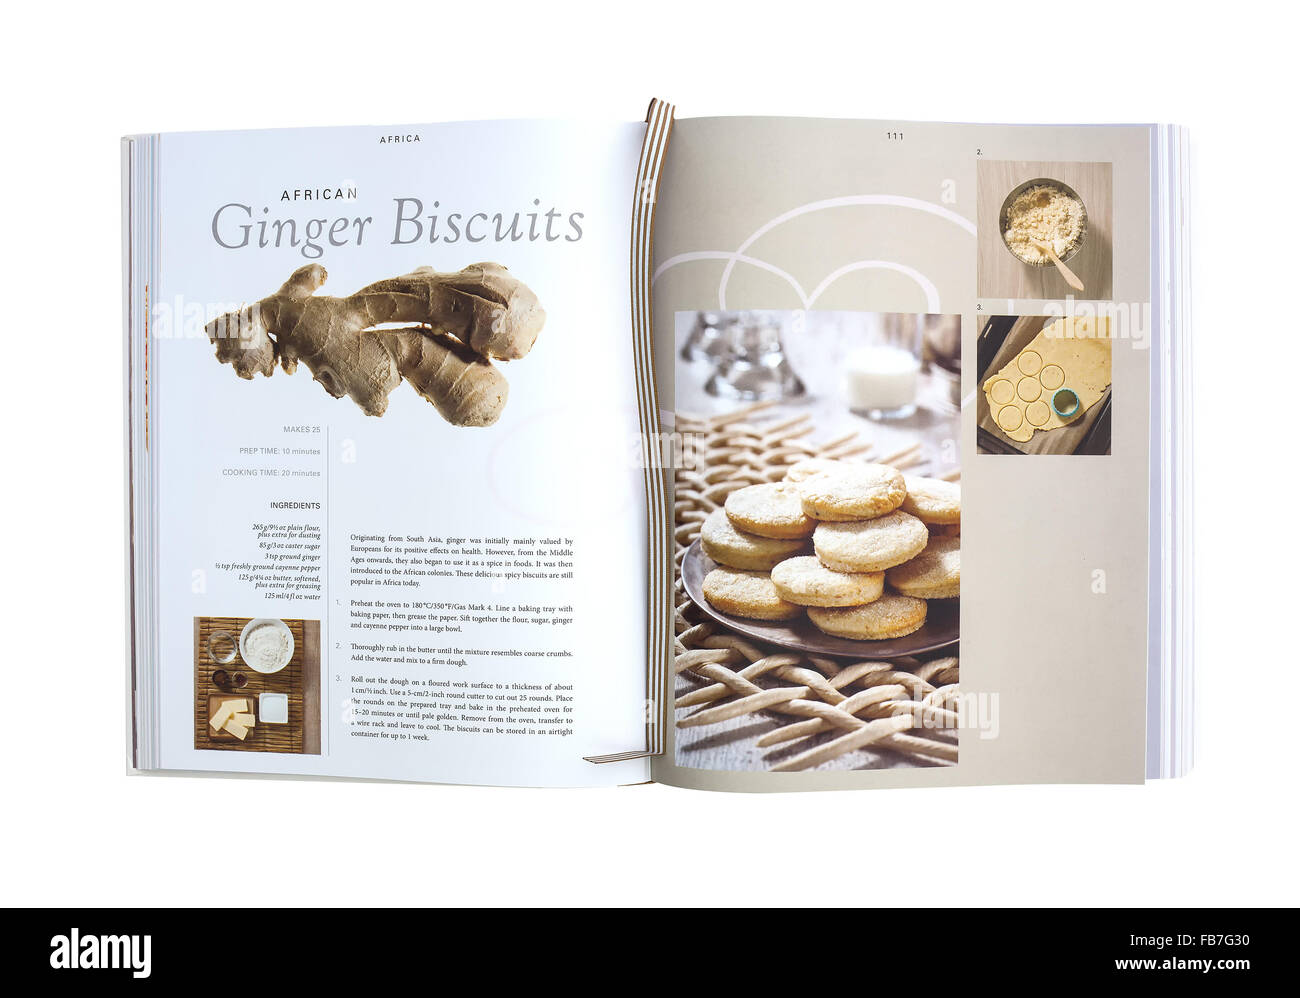 Recipe for African Ginger Biscuits from the Bake Cook Book - Stock Image